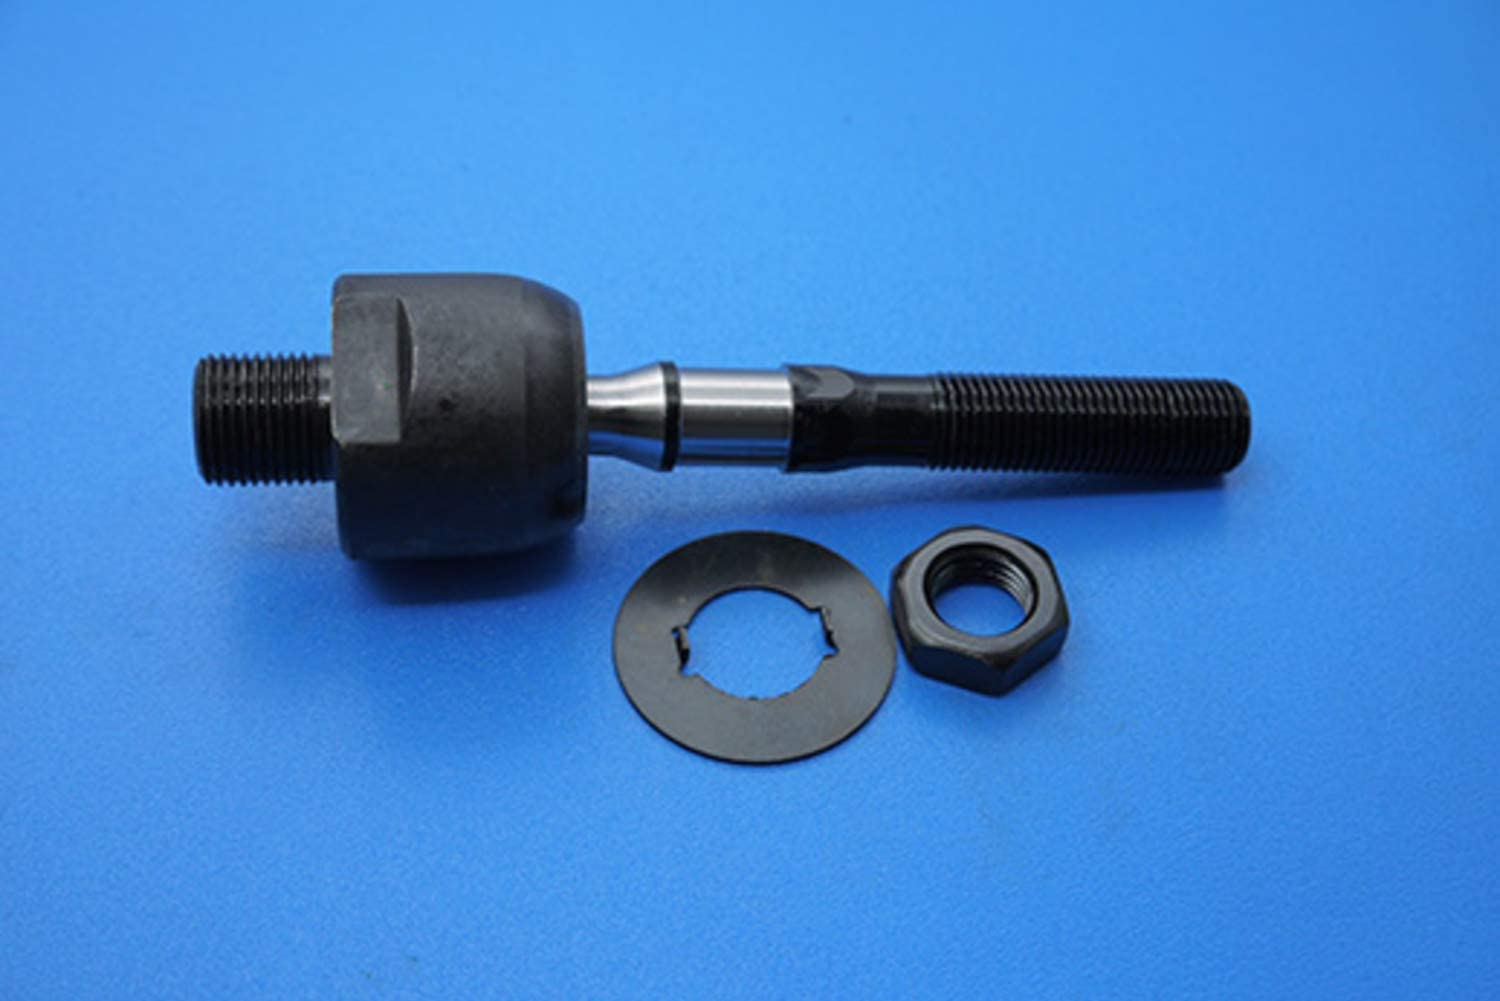 Package include One Tie Rod End Only 2005 Fits Acura TSX Front Inner Steering Tie Rod End With Five Years Warranty